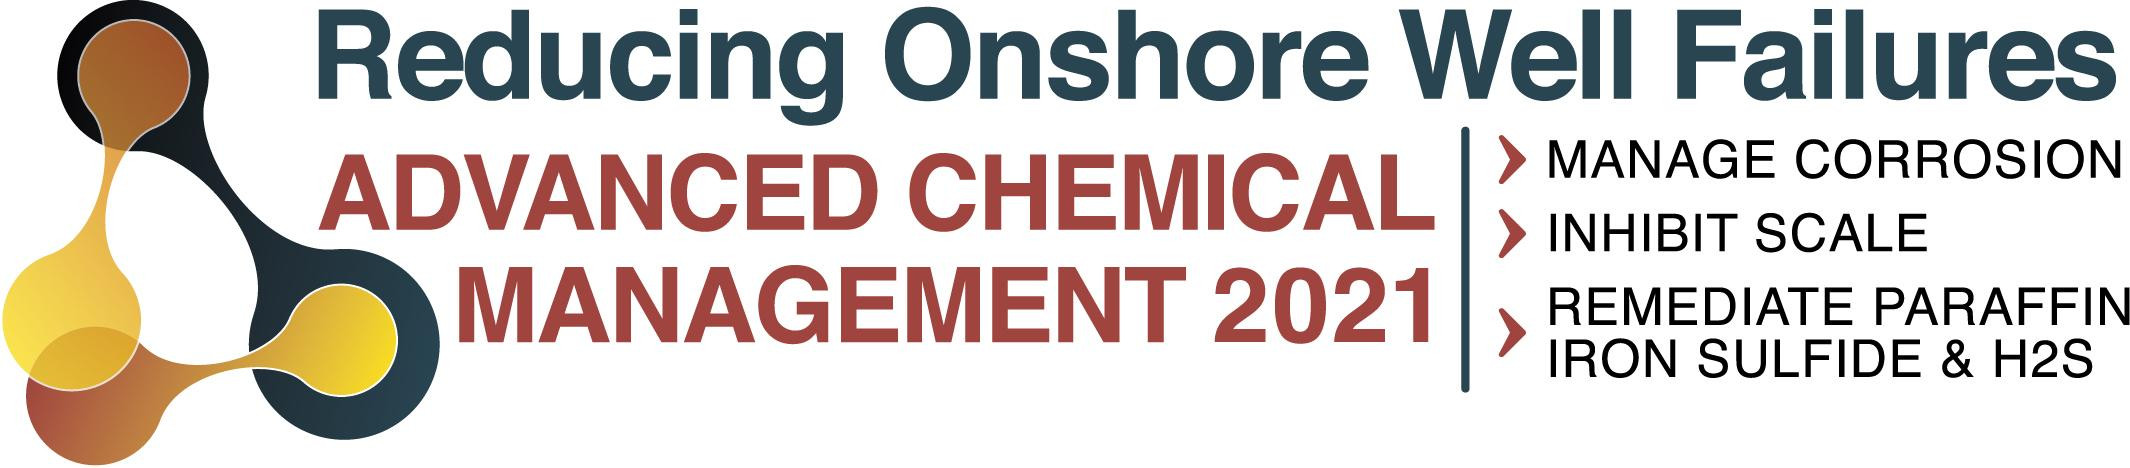 Reducing Onshore Well Failures: Advanced Chemical Management 2020